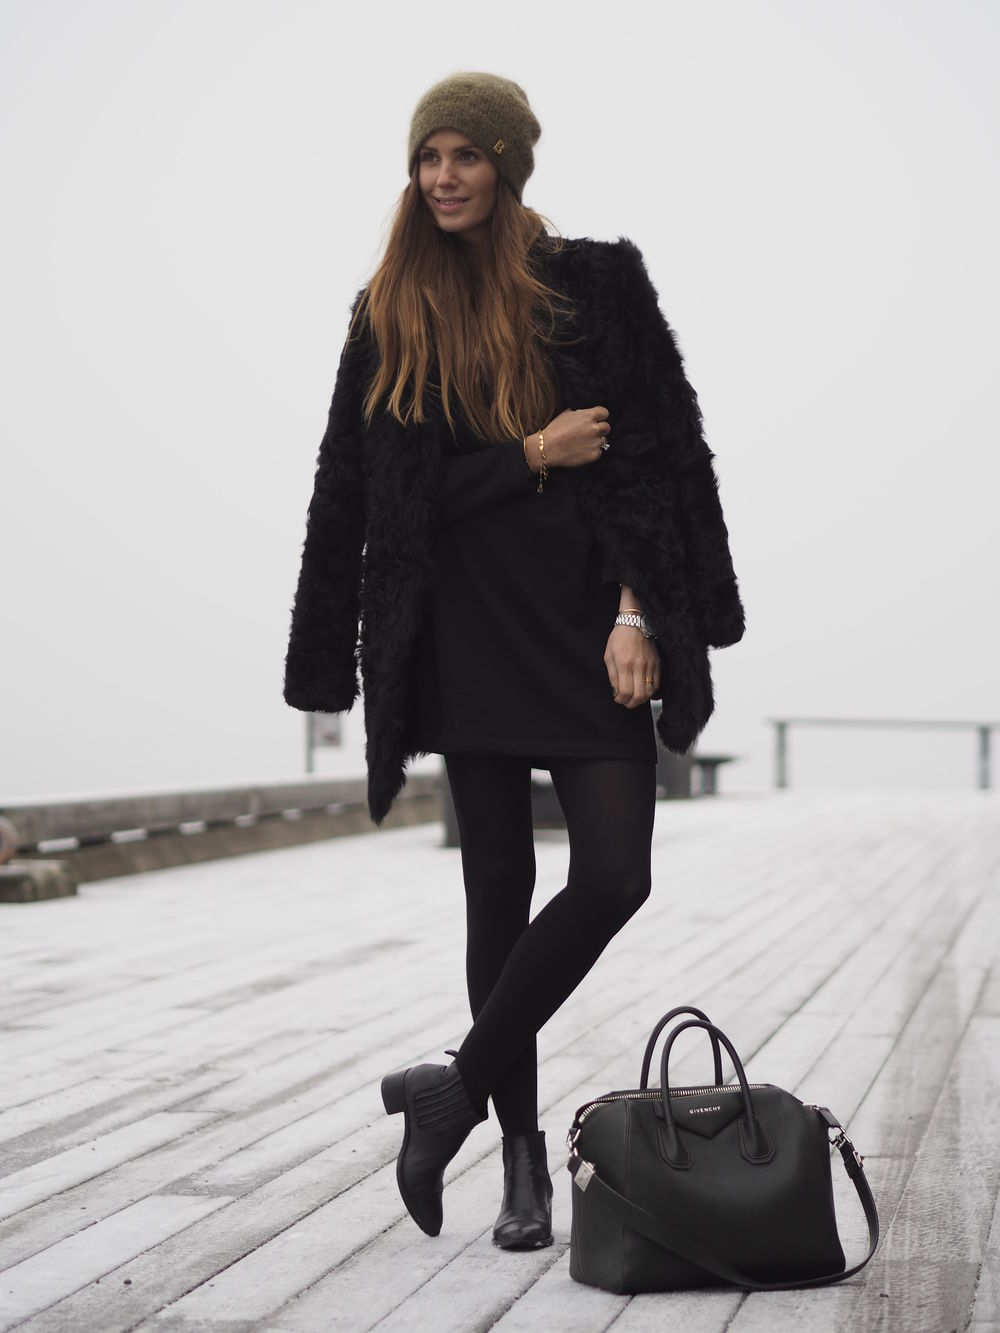 Fluffy Coats For Winter: Benedichte is wearing a black fluffy coat from V Collection